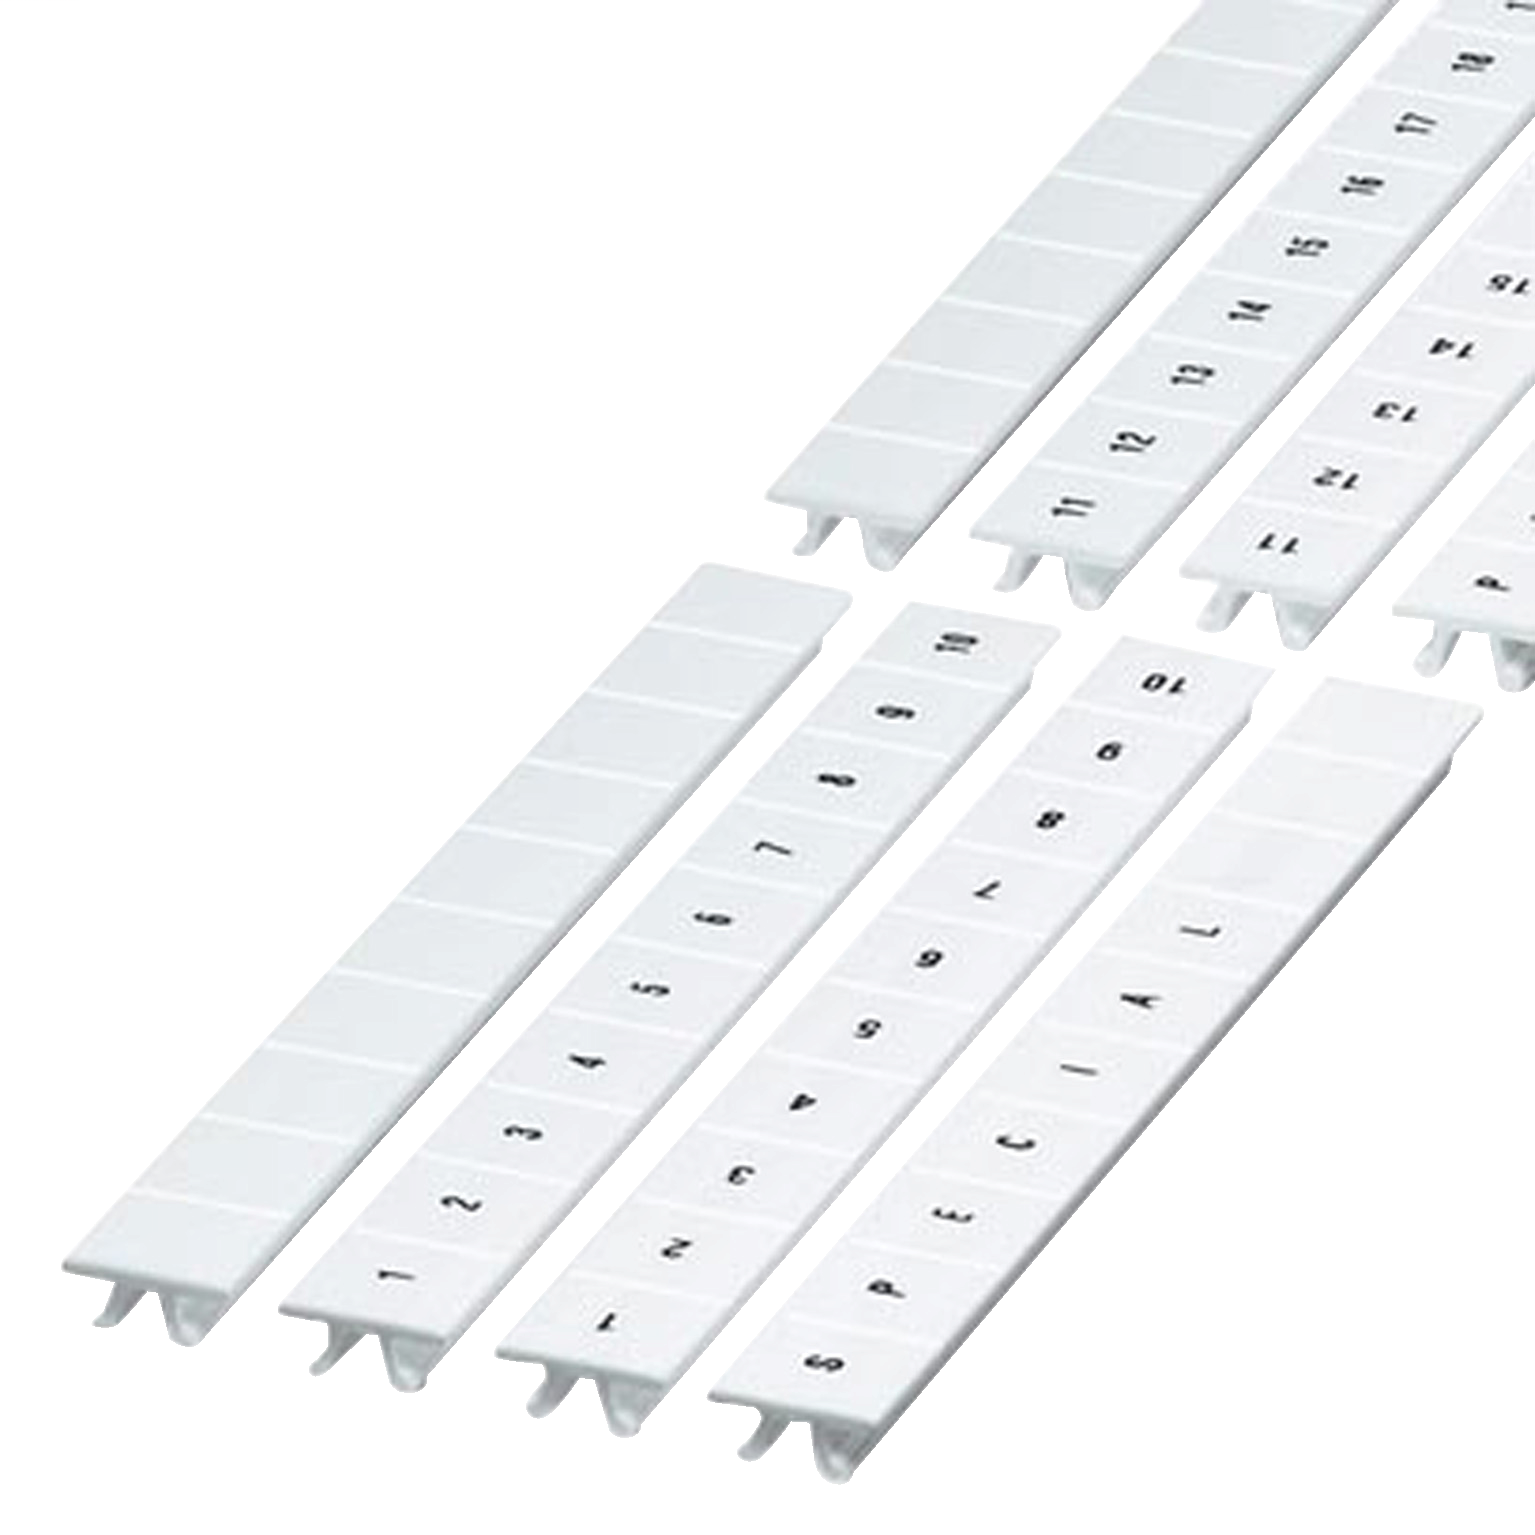 SCHNEIDER ELECTRIC CLIP IN MARKING STRIP, 10MM, 10 CHARACTERS 21 TO 30, PRINTED HORIZONT